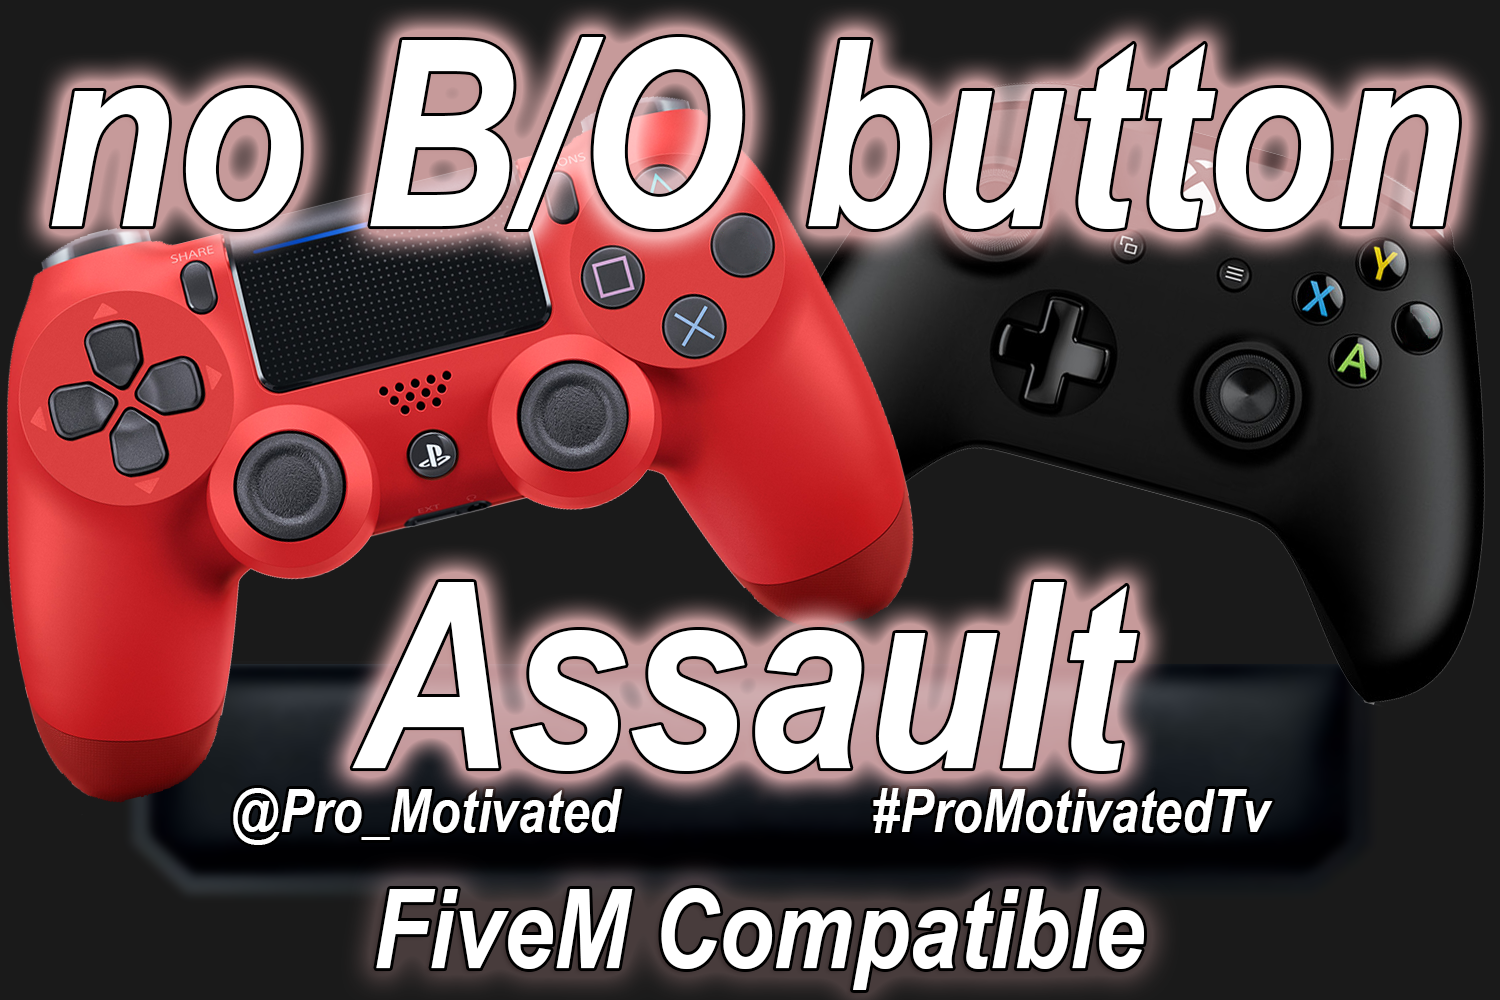 Motivated No Assault from B/O button (FiveM Compatible